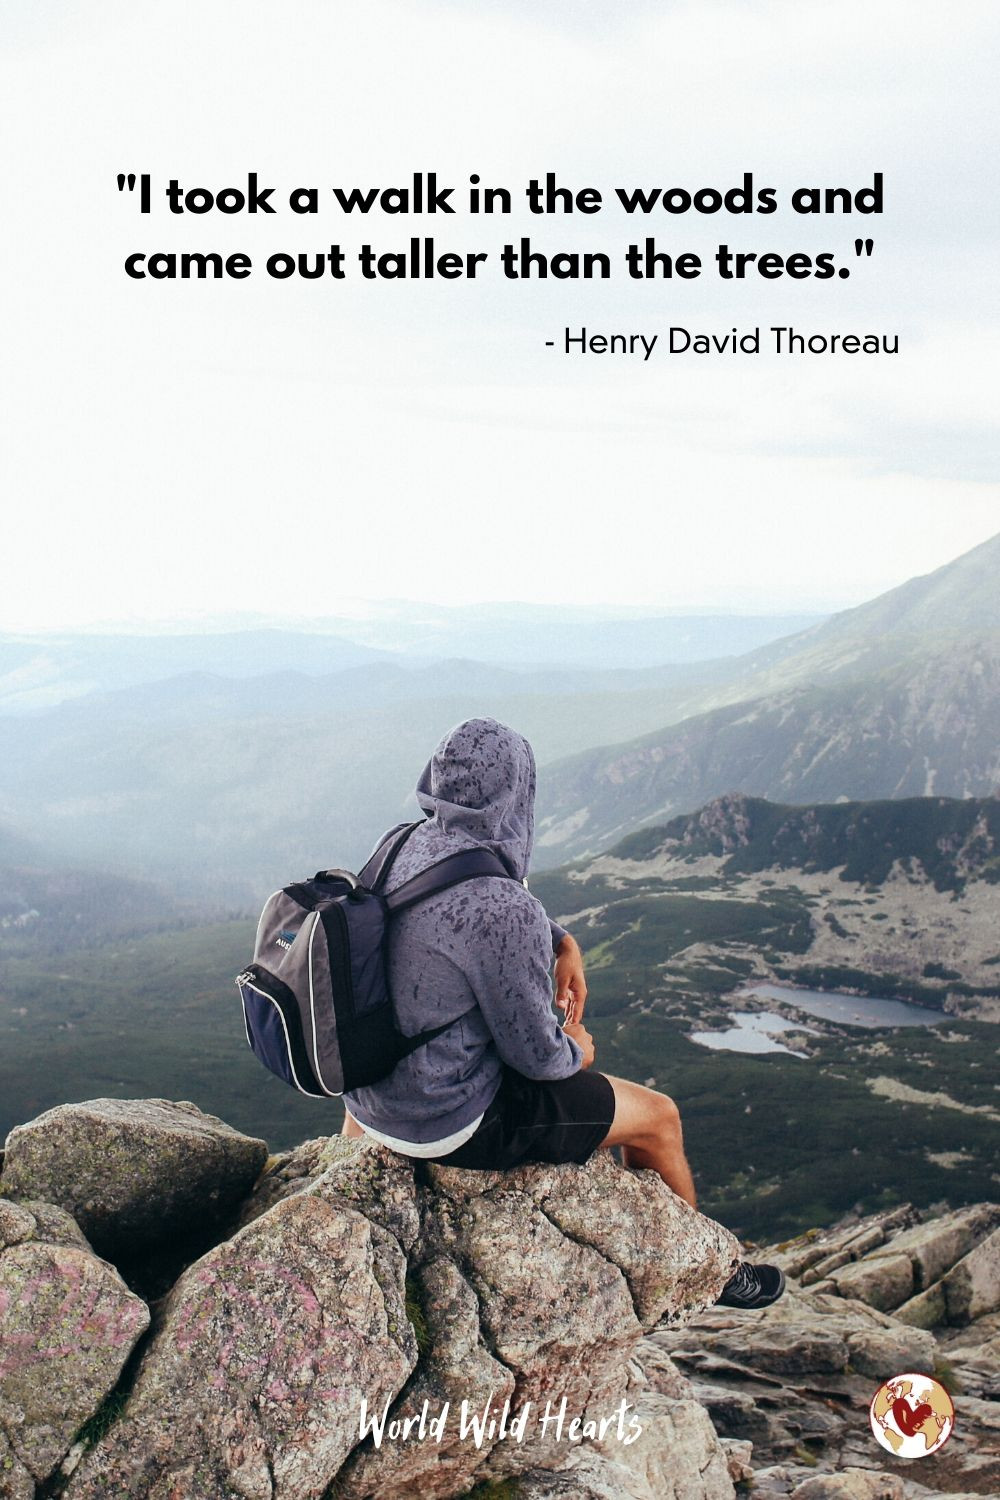 Best nature quote about woods